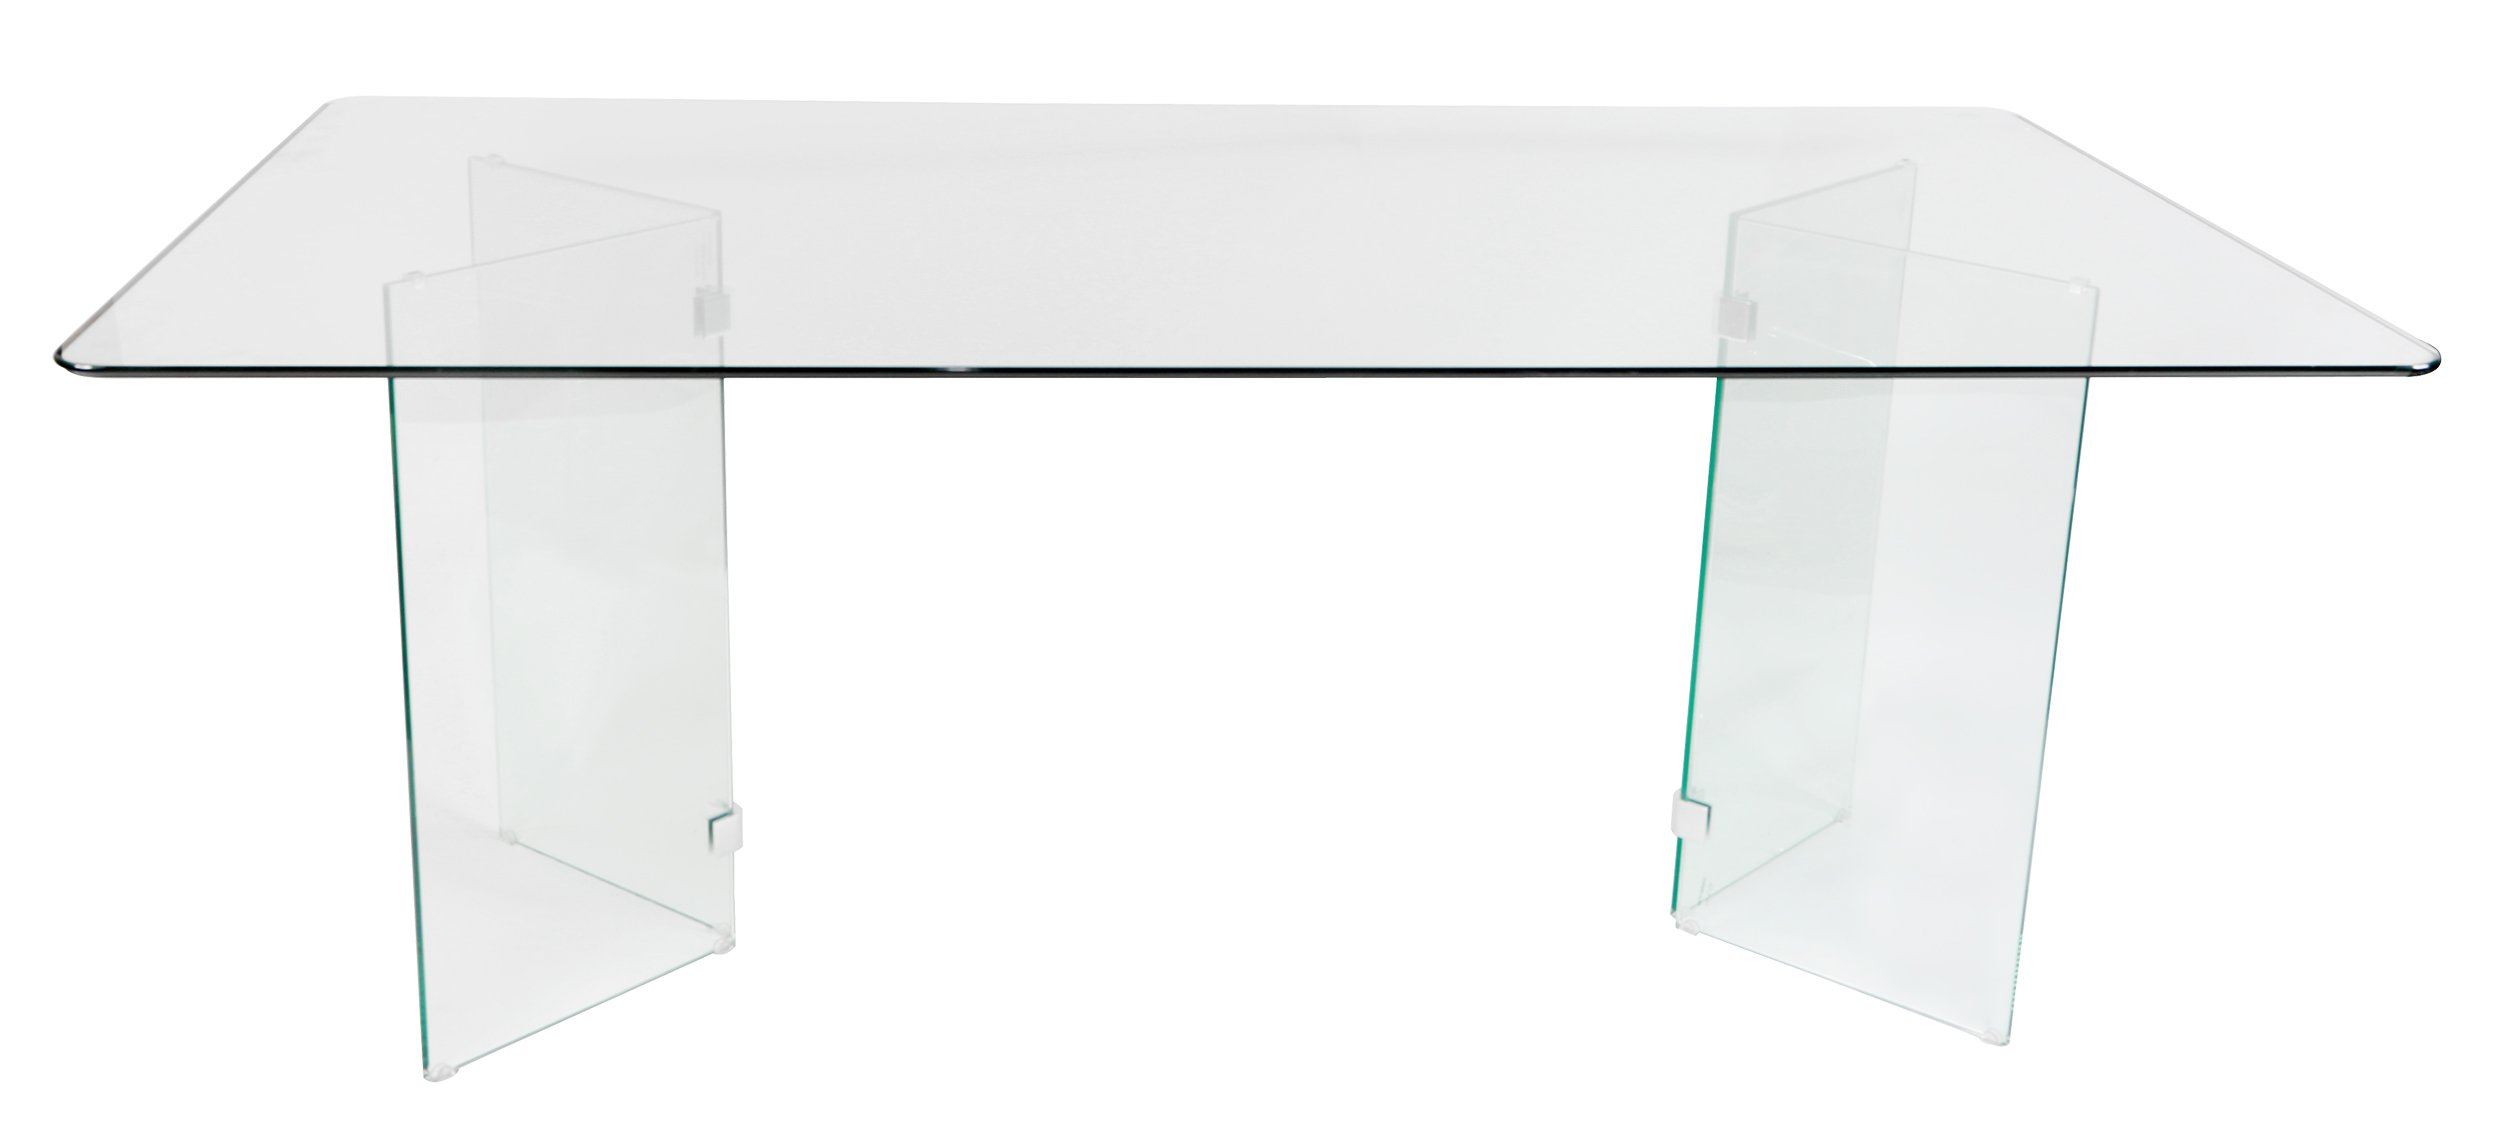 Homelegance Alouette 72'' x 42'' Glass Dining Table, Clear